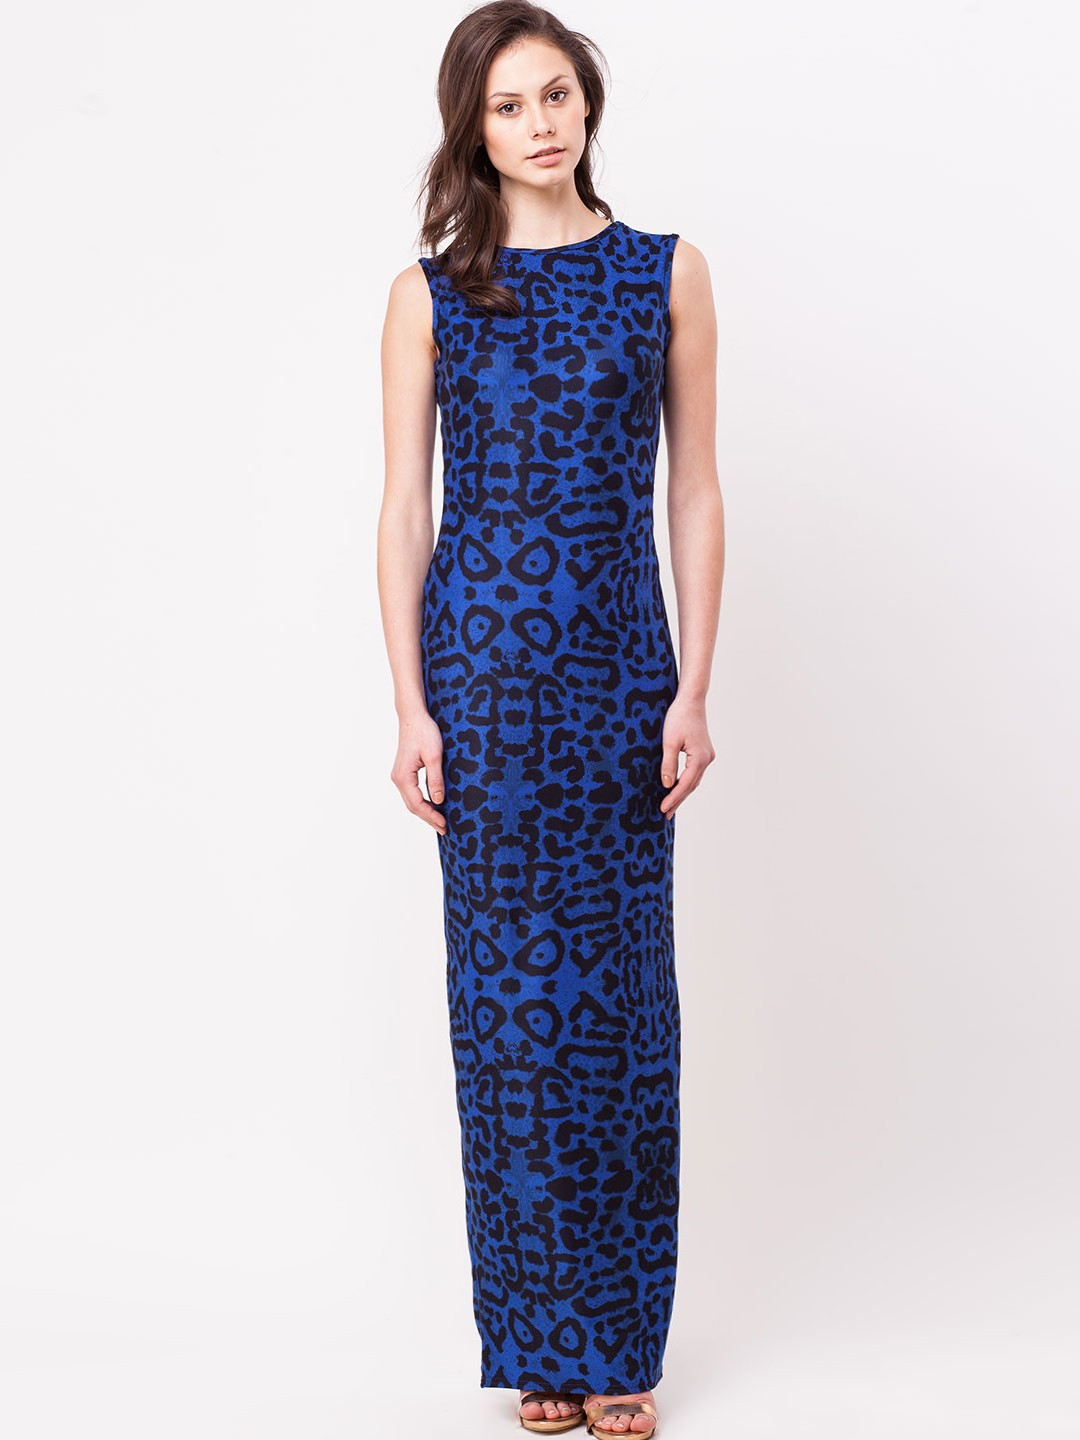 Fantastic  Women  Women39s PorcelainFloral Print Maxi Dresses Online In India